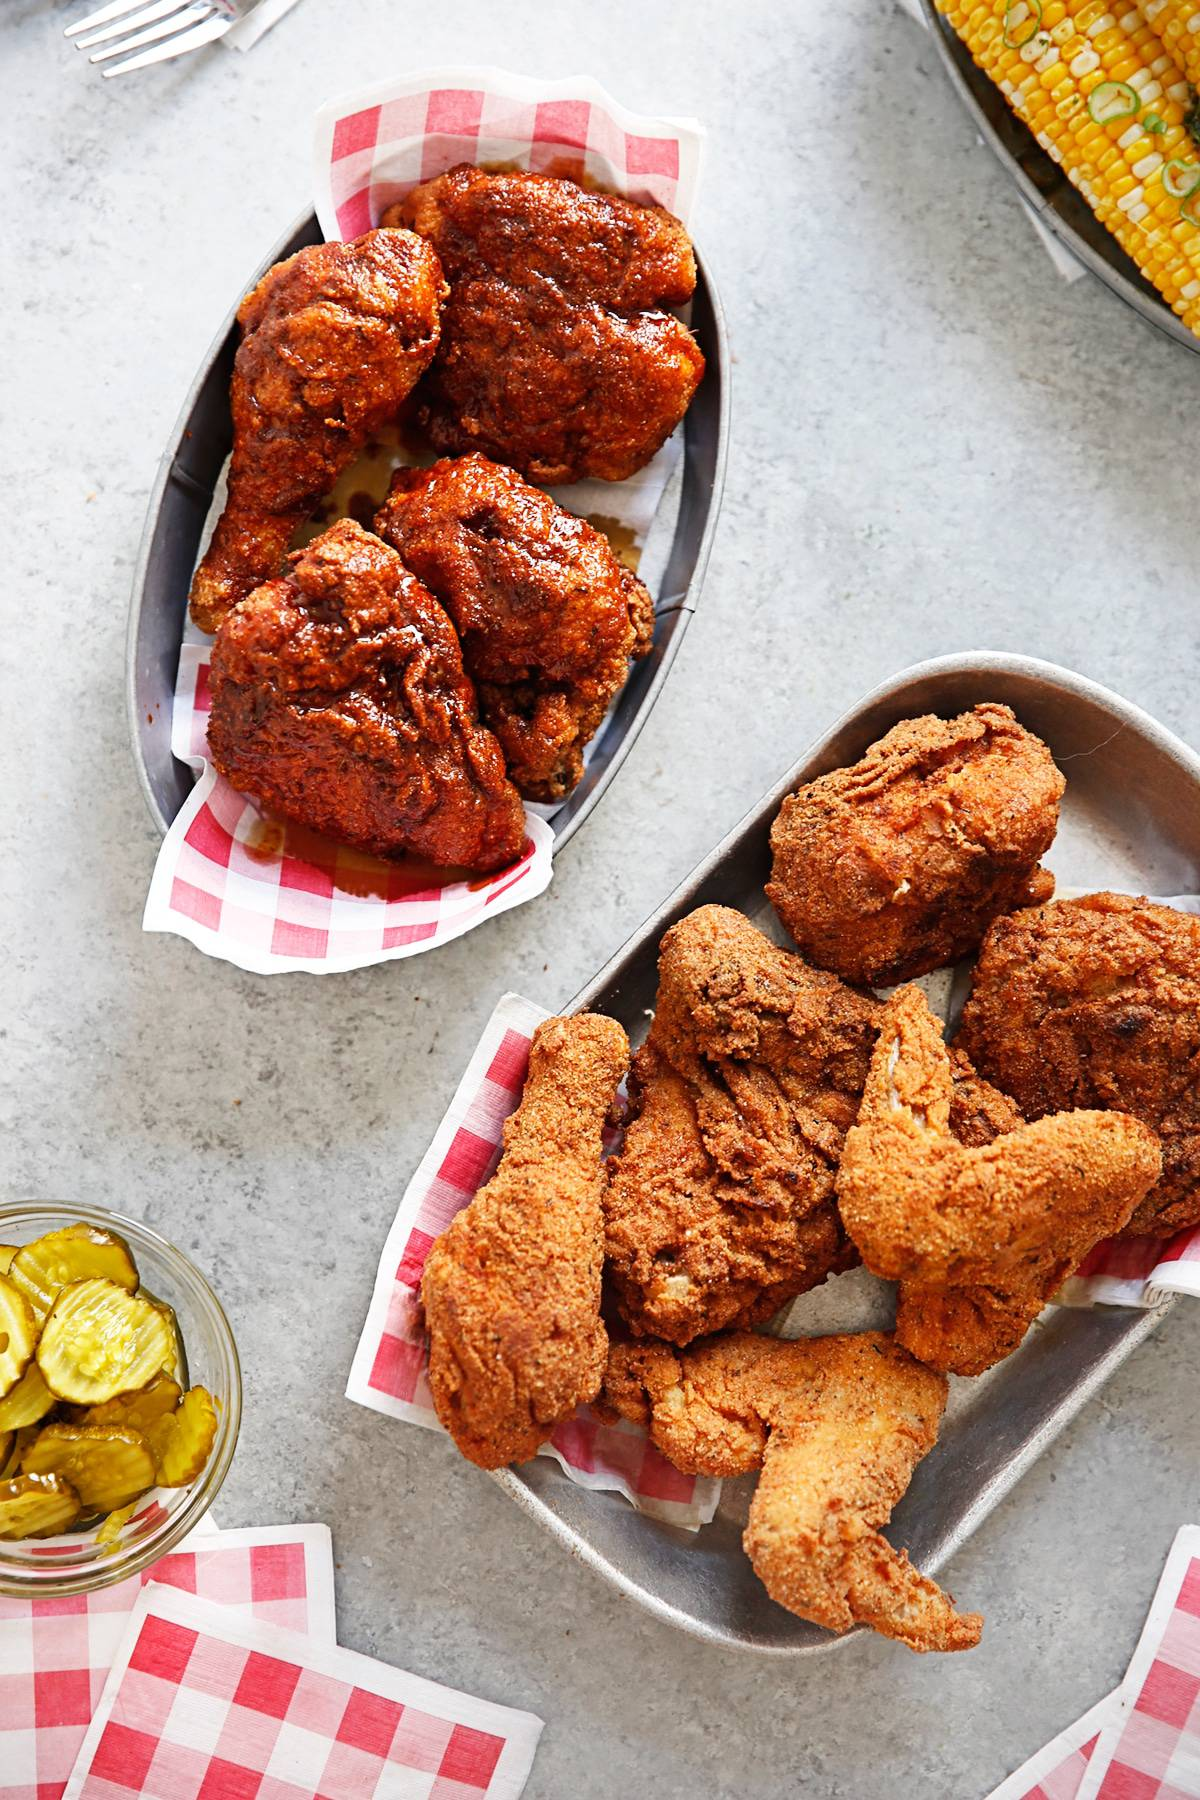 Gluten-Free Fried Chicken